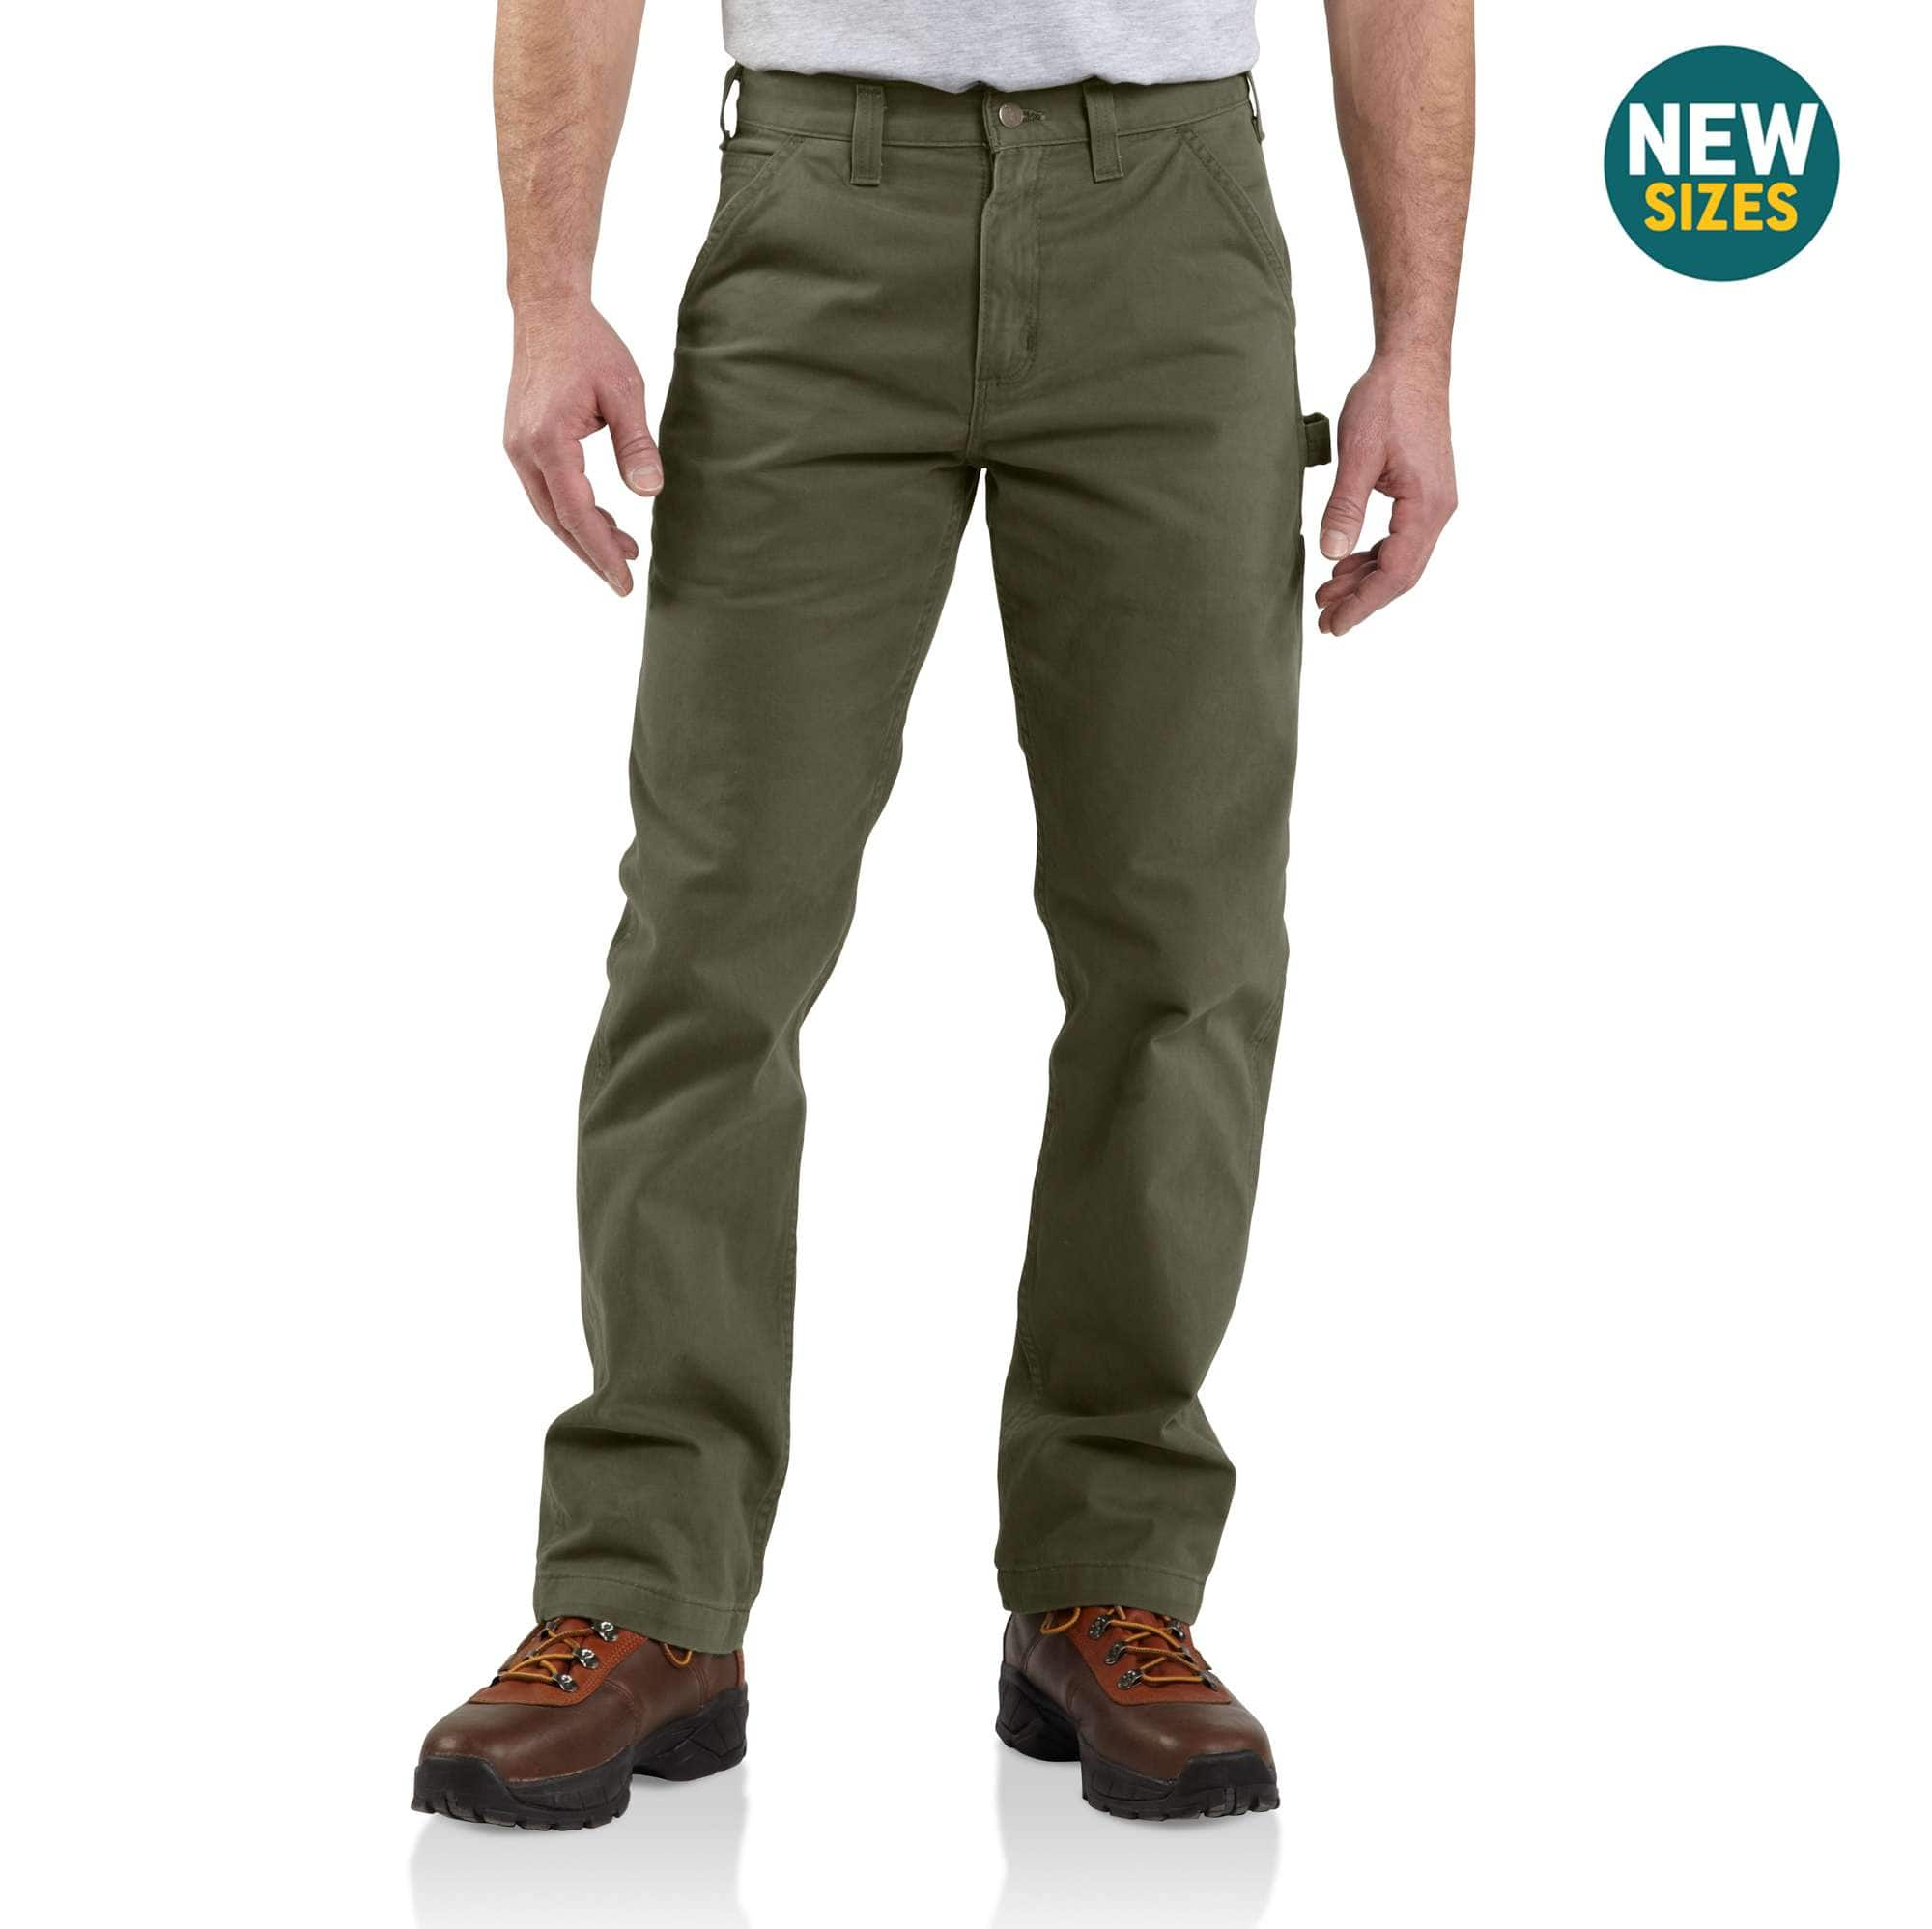 09551e4ff48937 Men s Washed Twill Relaxed Fit Work Pant B324